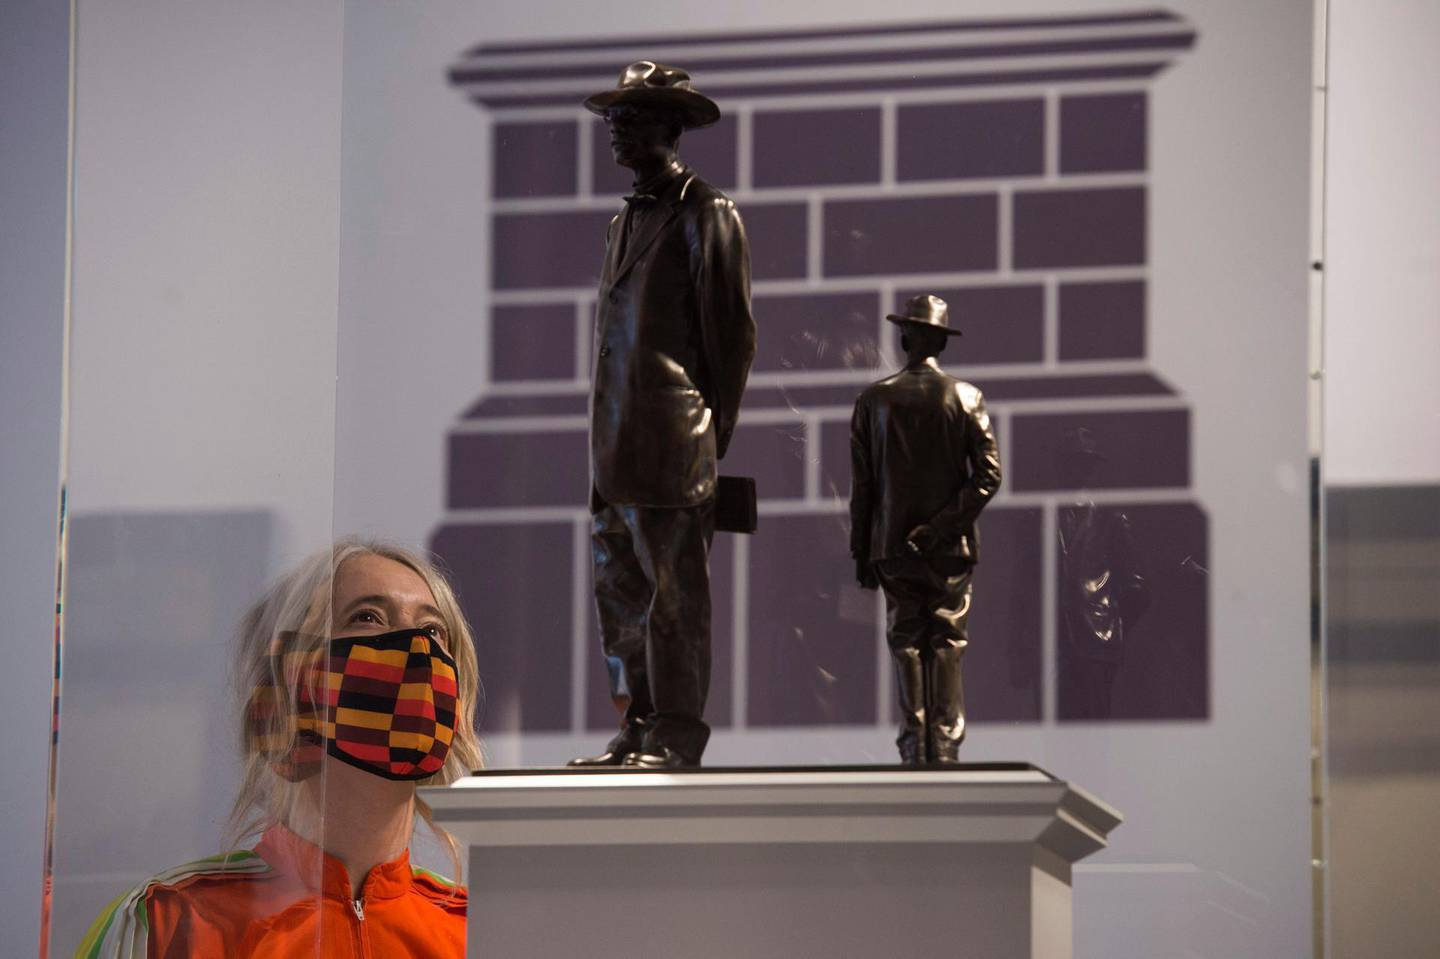 Deputy London Mayor Justine Simons looks at Antelope by Samson Kambalu, on display at the National Gallery, in London, one of the six artworks proposed as the next design for the Fourth Plinth at Trafalgar Square, in London, Monday May 24, 2021. (Kirsty O'Connor/PA via AP)